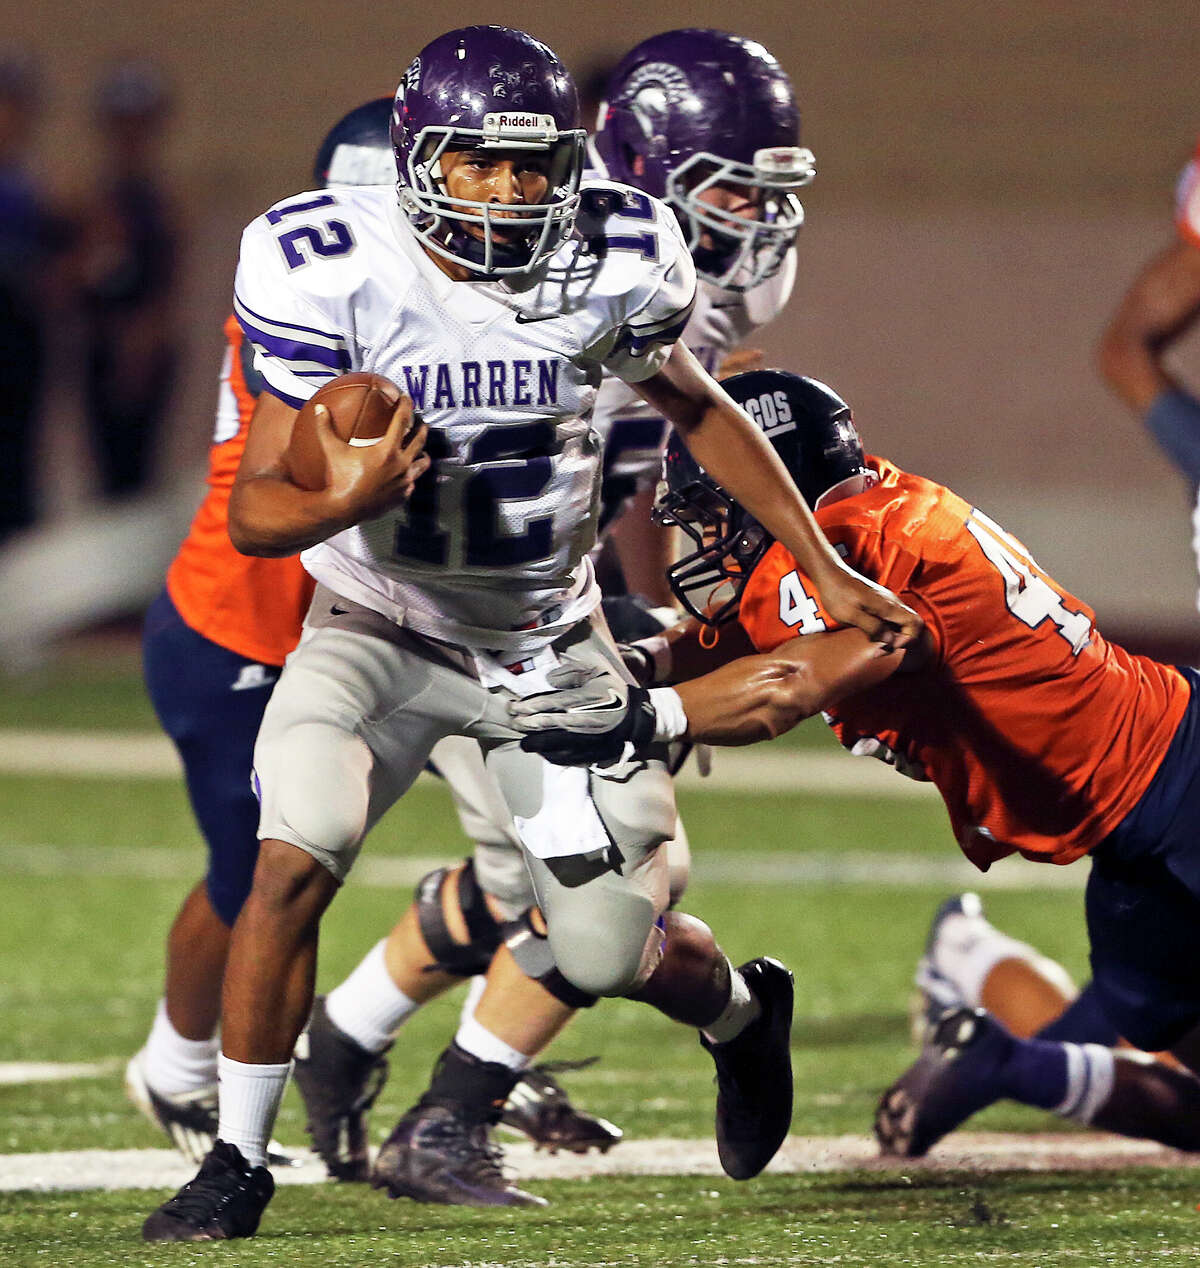 Warrior quarterback Jordan Sneed gets by Chase Guillory as he tries the middle for some yards as Warren plays Brandeis at Farris Stadium on September 13, 2013.